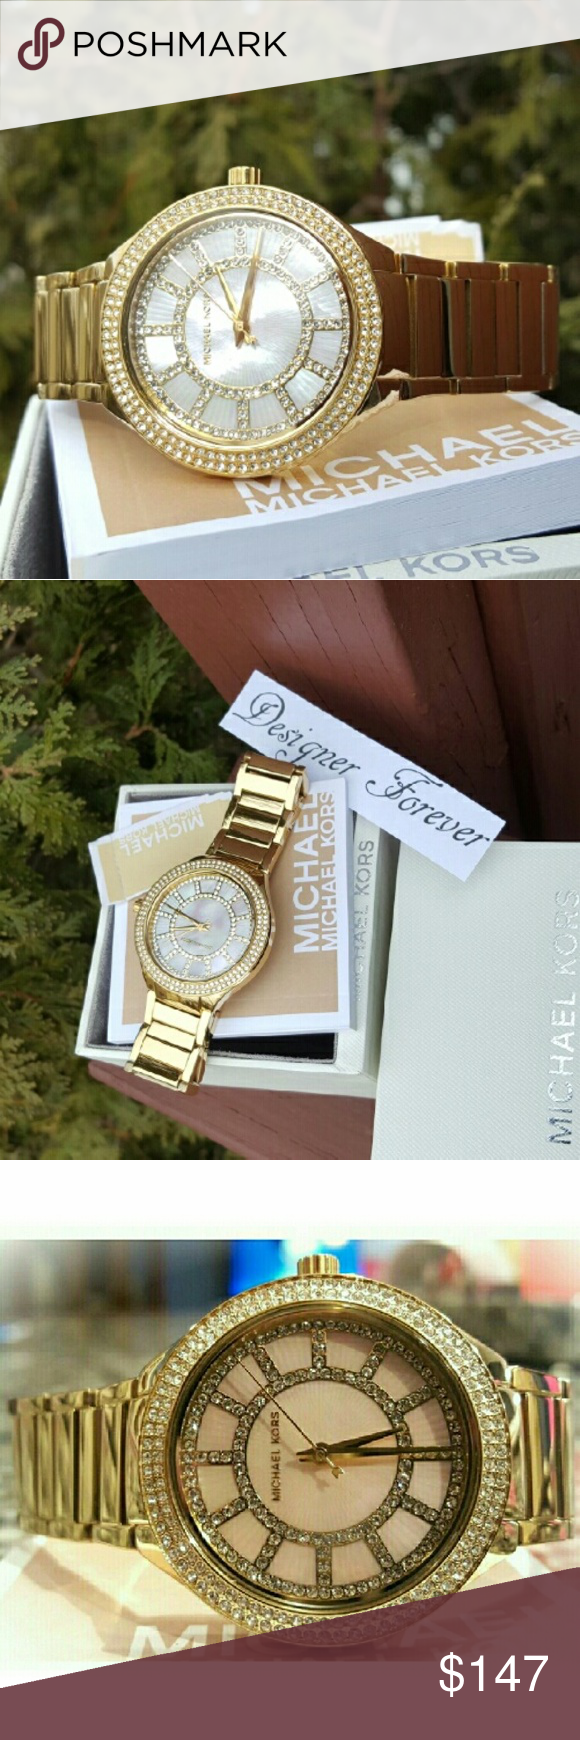 Michael Kors gold Kerry MK bracelet watch MK3396 Guaranteed Authentic MK3396 / Model: Kerry / Gold stainless steel band / New with Michael Kors watch box and owners booklet included / Glitz dial / 38mm / 5 ATM / UPC: 796483175075 / No trades. Buy now or offer only / Shipped same business day. Michael Kors Accessories Watches